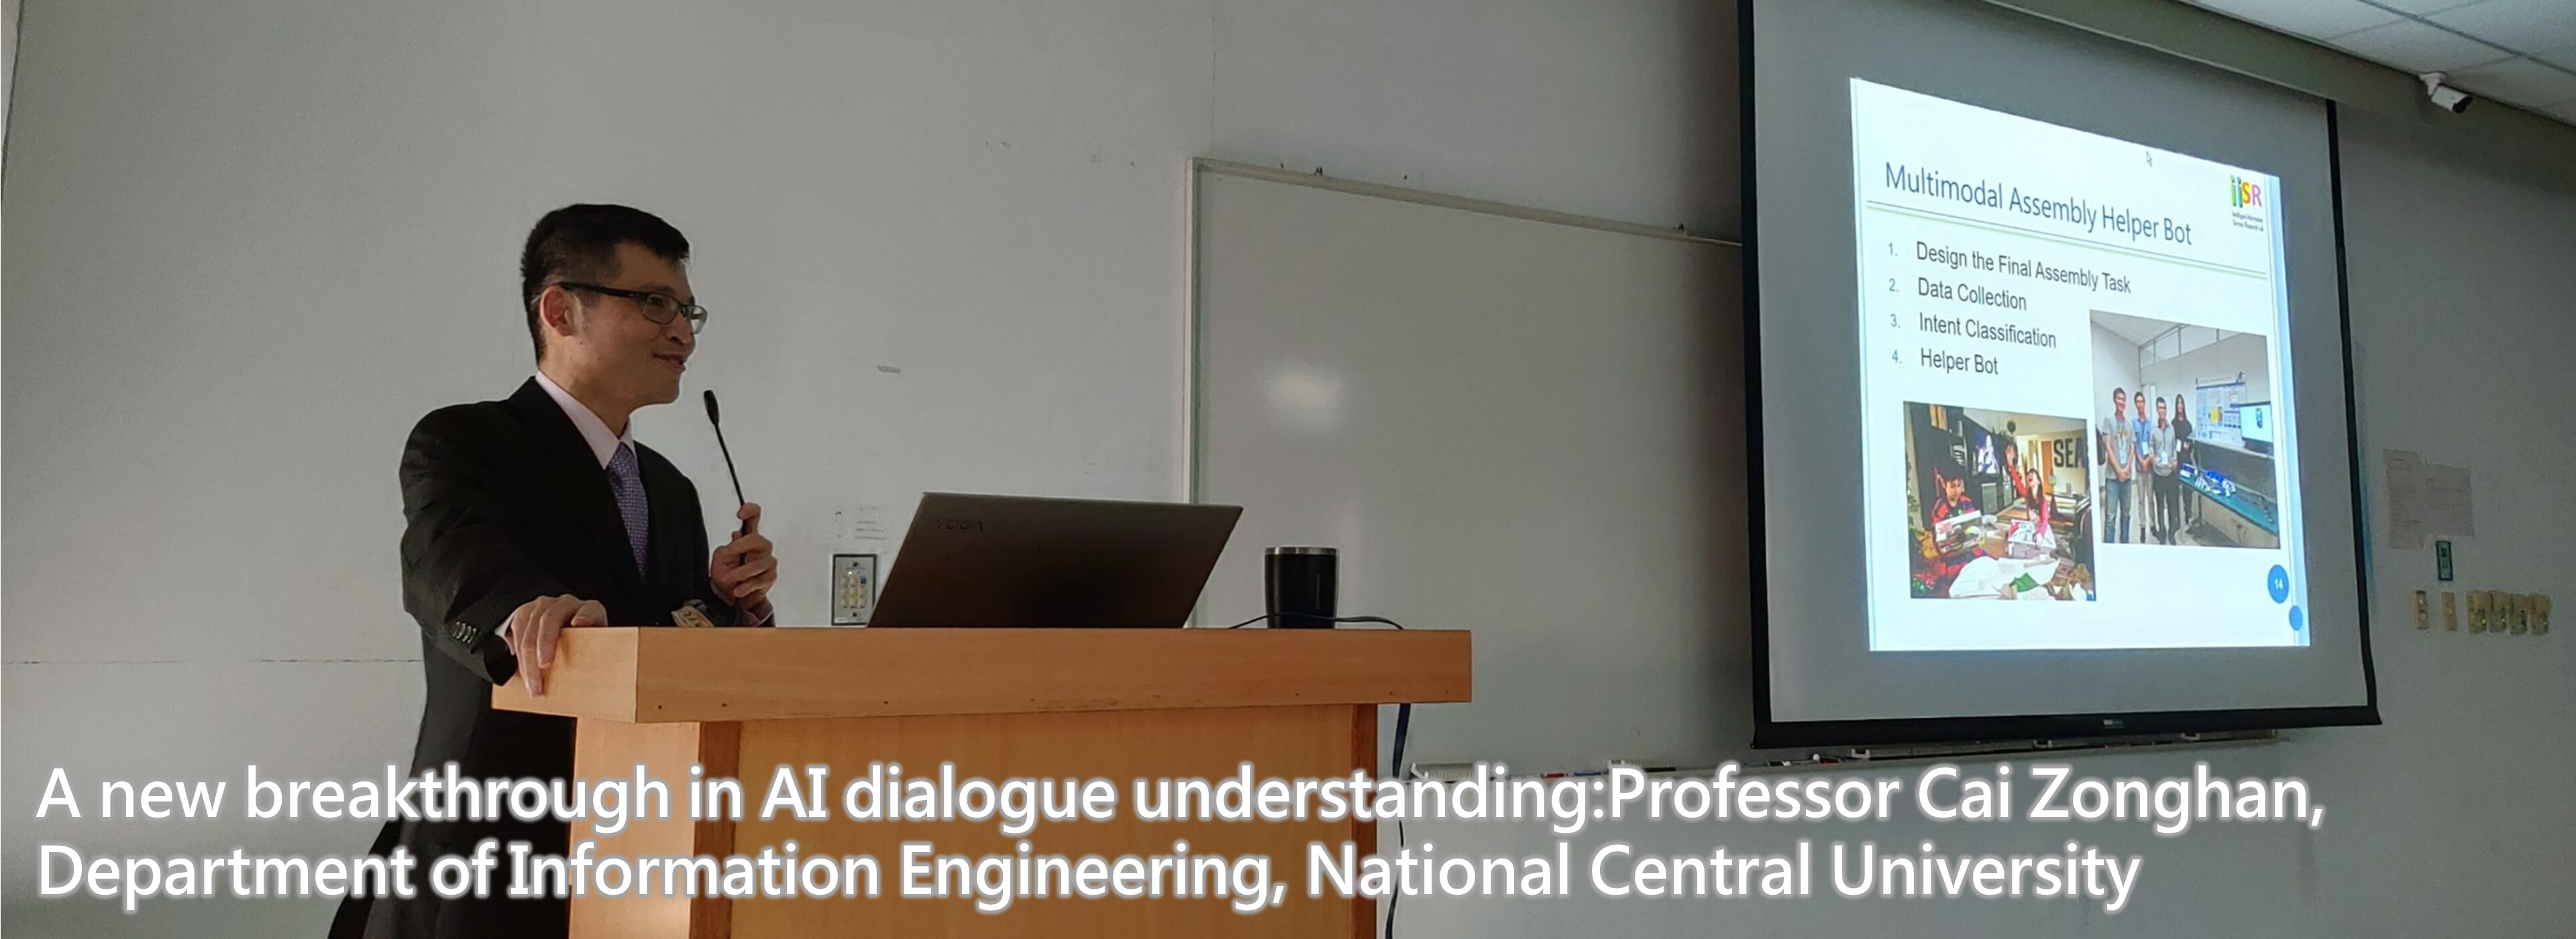 A new breakthrough in AI dialogue understanding:Professor Cai Zonghan, Department of Information Engineering, National Central University